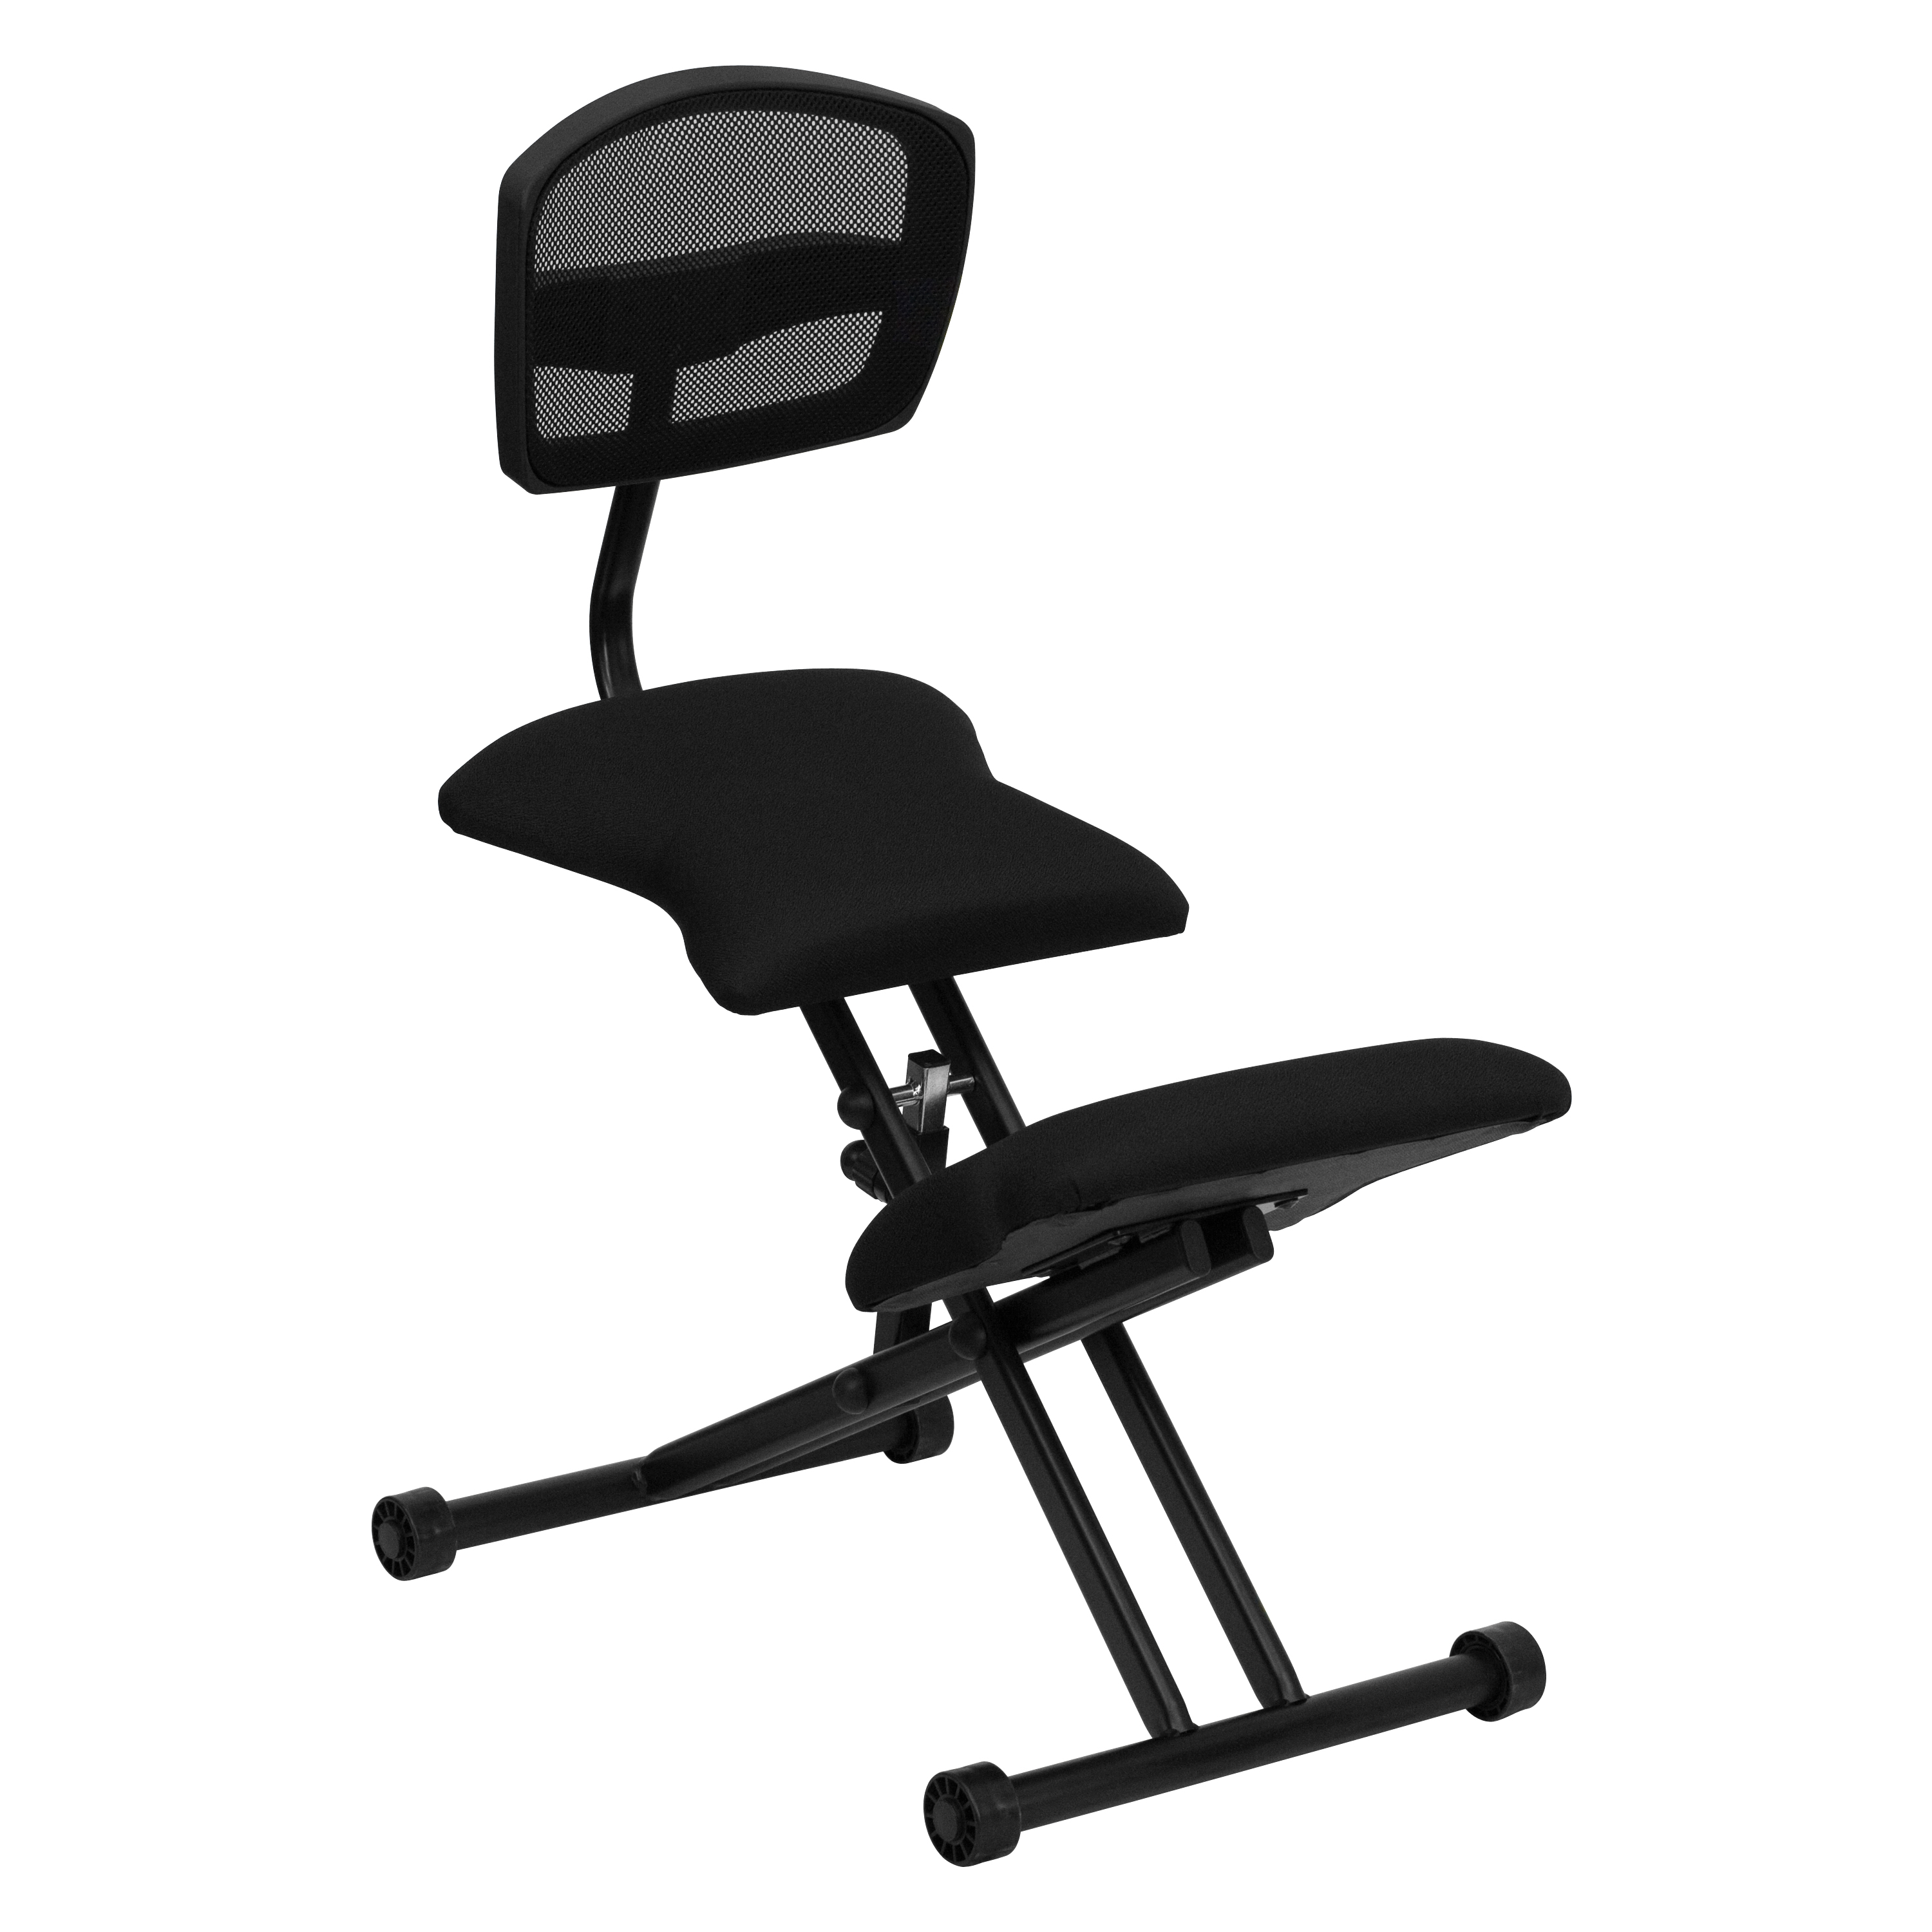 Ergonomic Chair Kneeling Flash Ergonomic Kneeling Chair With Black Mesh Back And